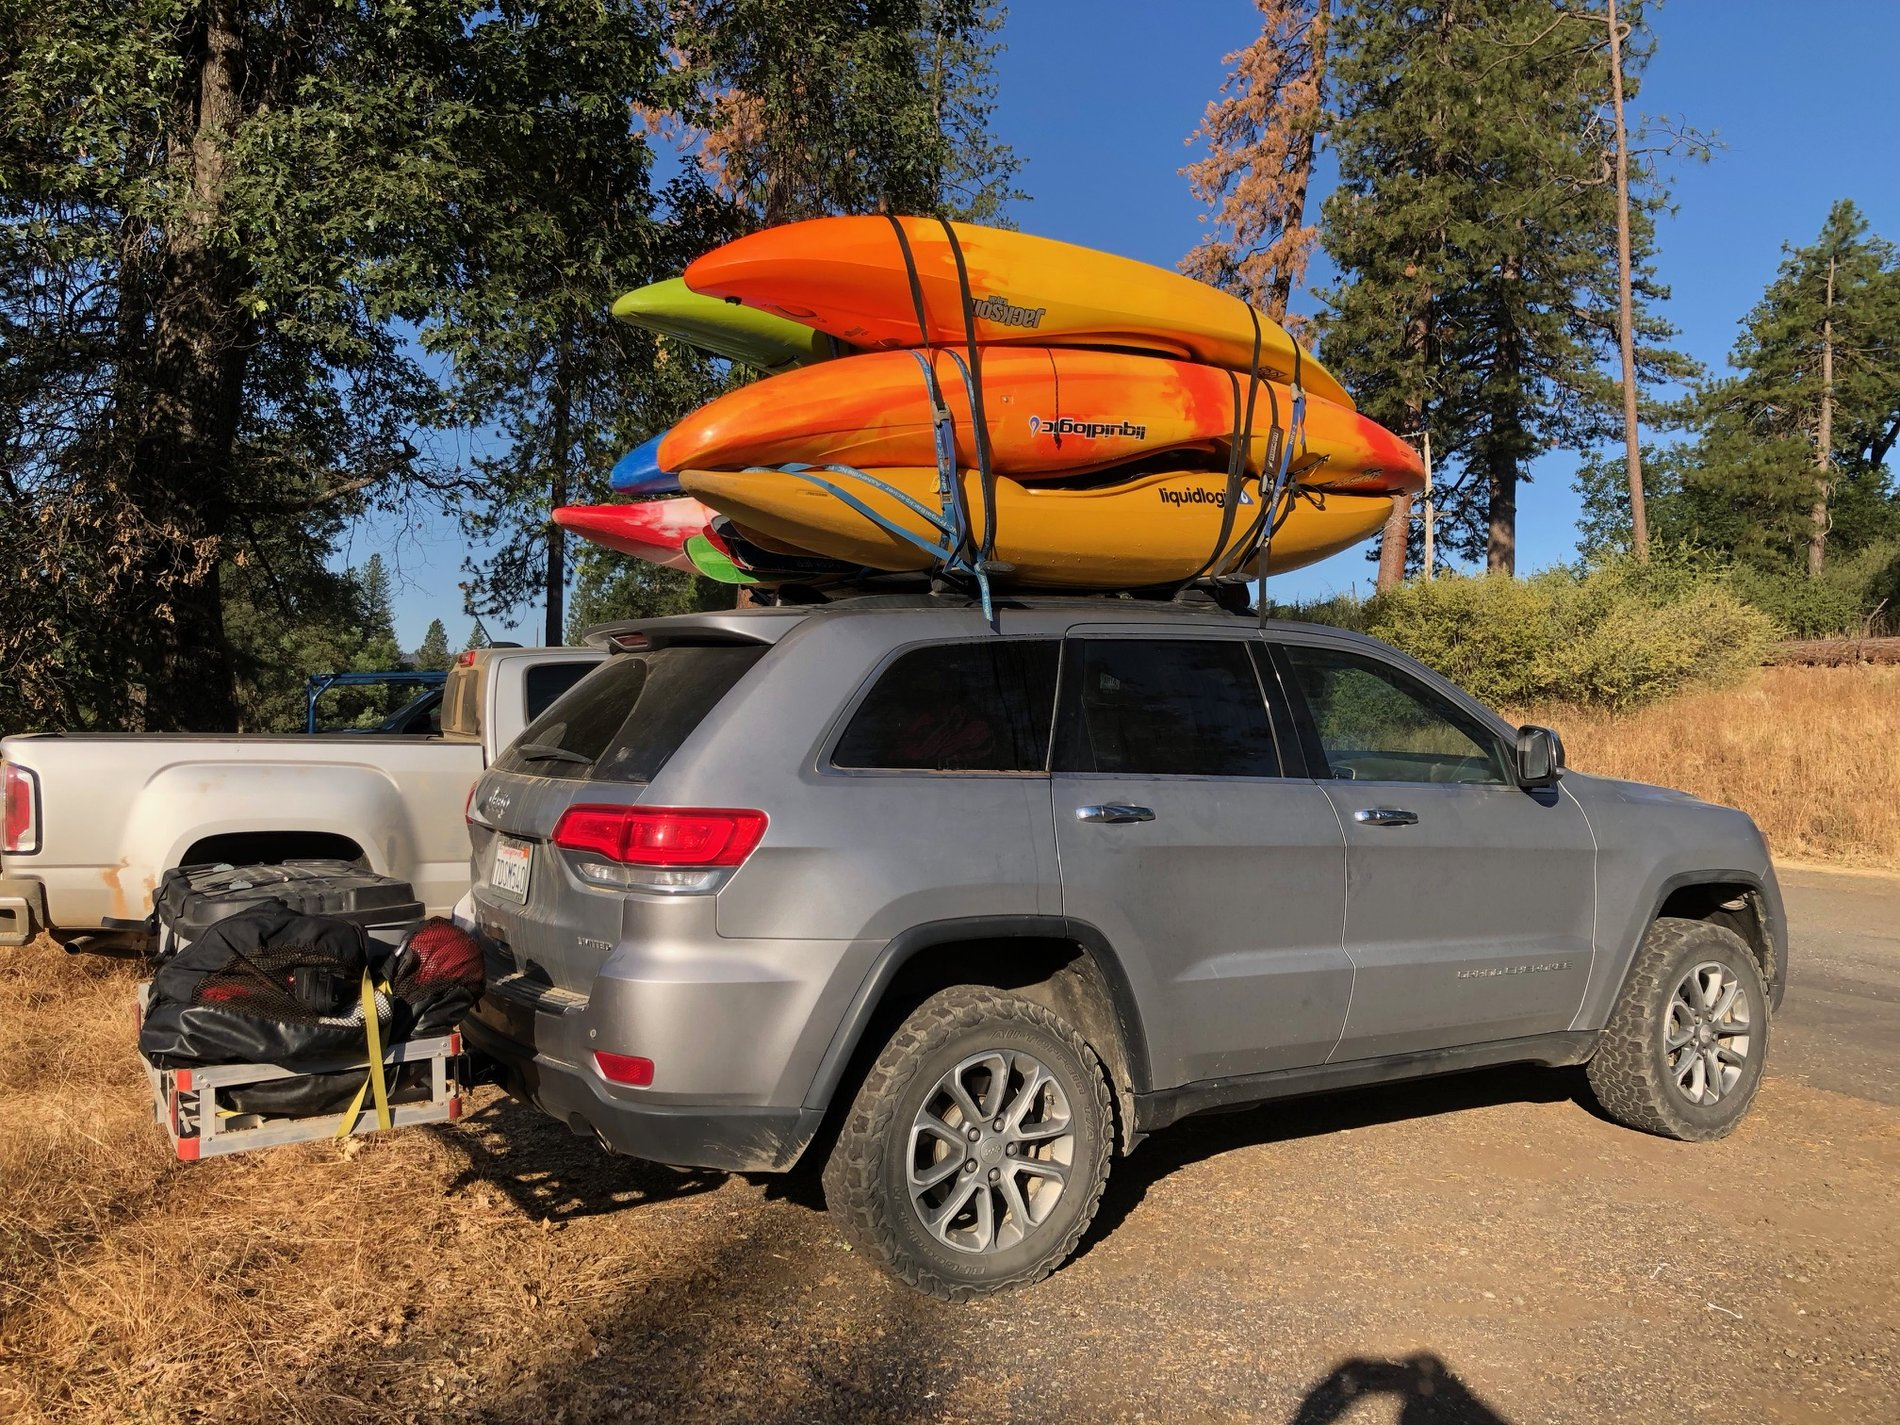 Bed Rack Storage For Kayaks Jeep Gladiator Forum